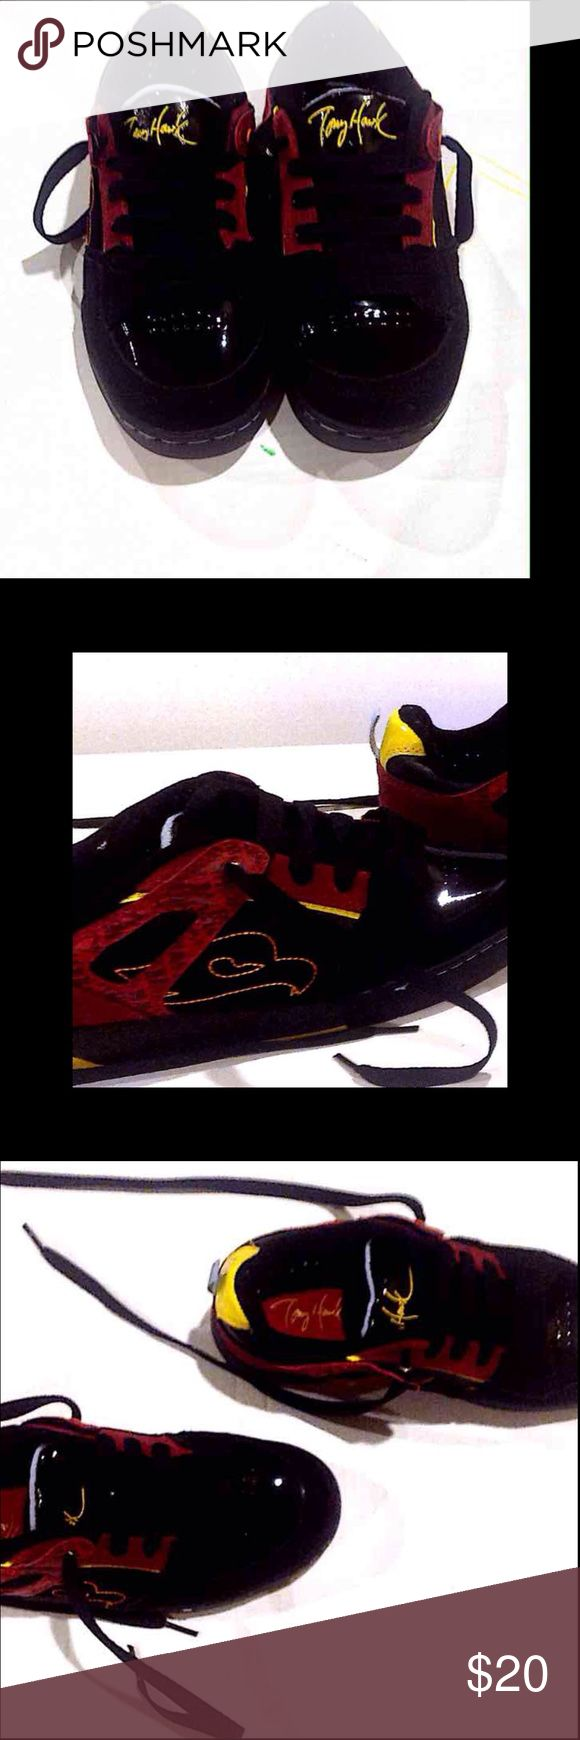 TONY HAWK BOYS SHOES . Tony Hawk Shoes. Bright colors like red, yellow and black .Brand new with black shoe lace and Tony Hawk embellished on the front , back and on the sides. Brand new with out tag. Never worn. Tony Hawk Shoes Sneakers